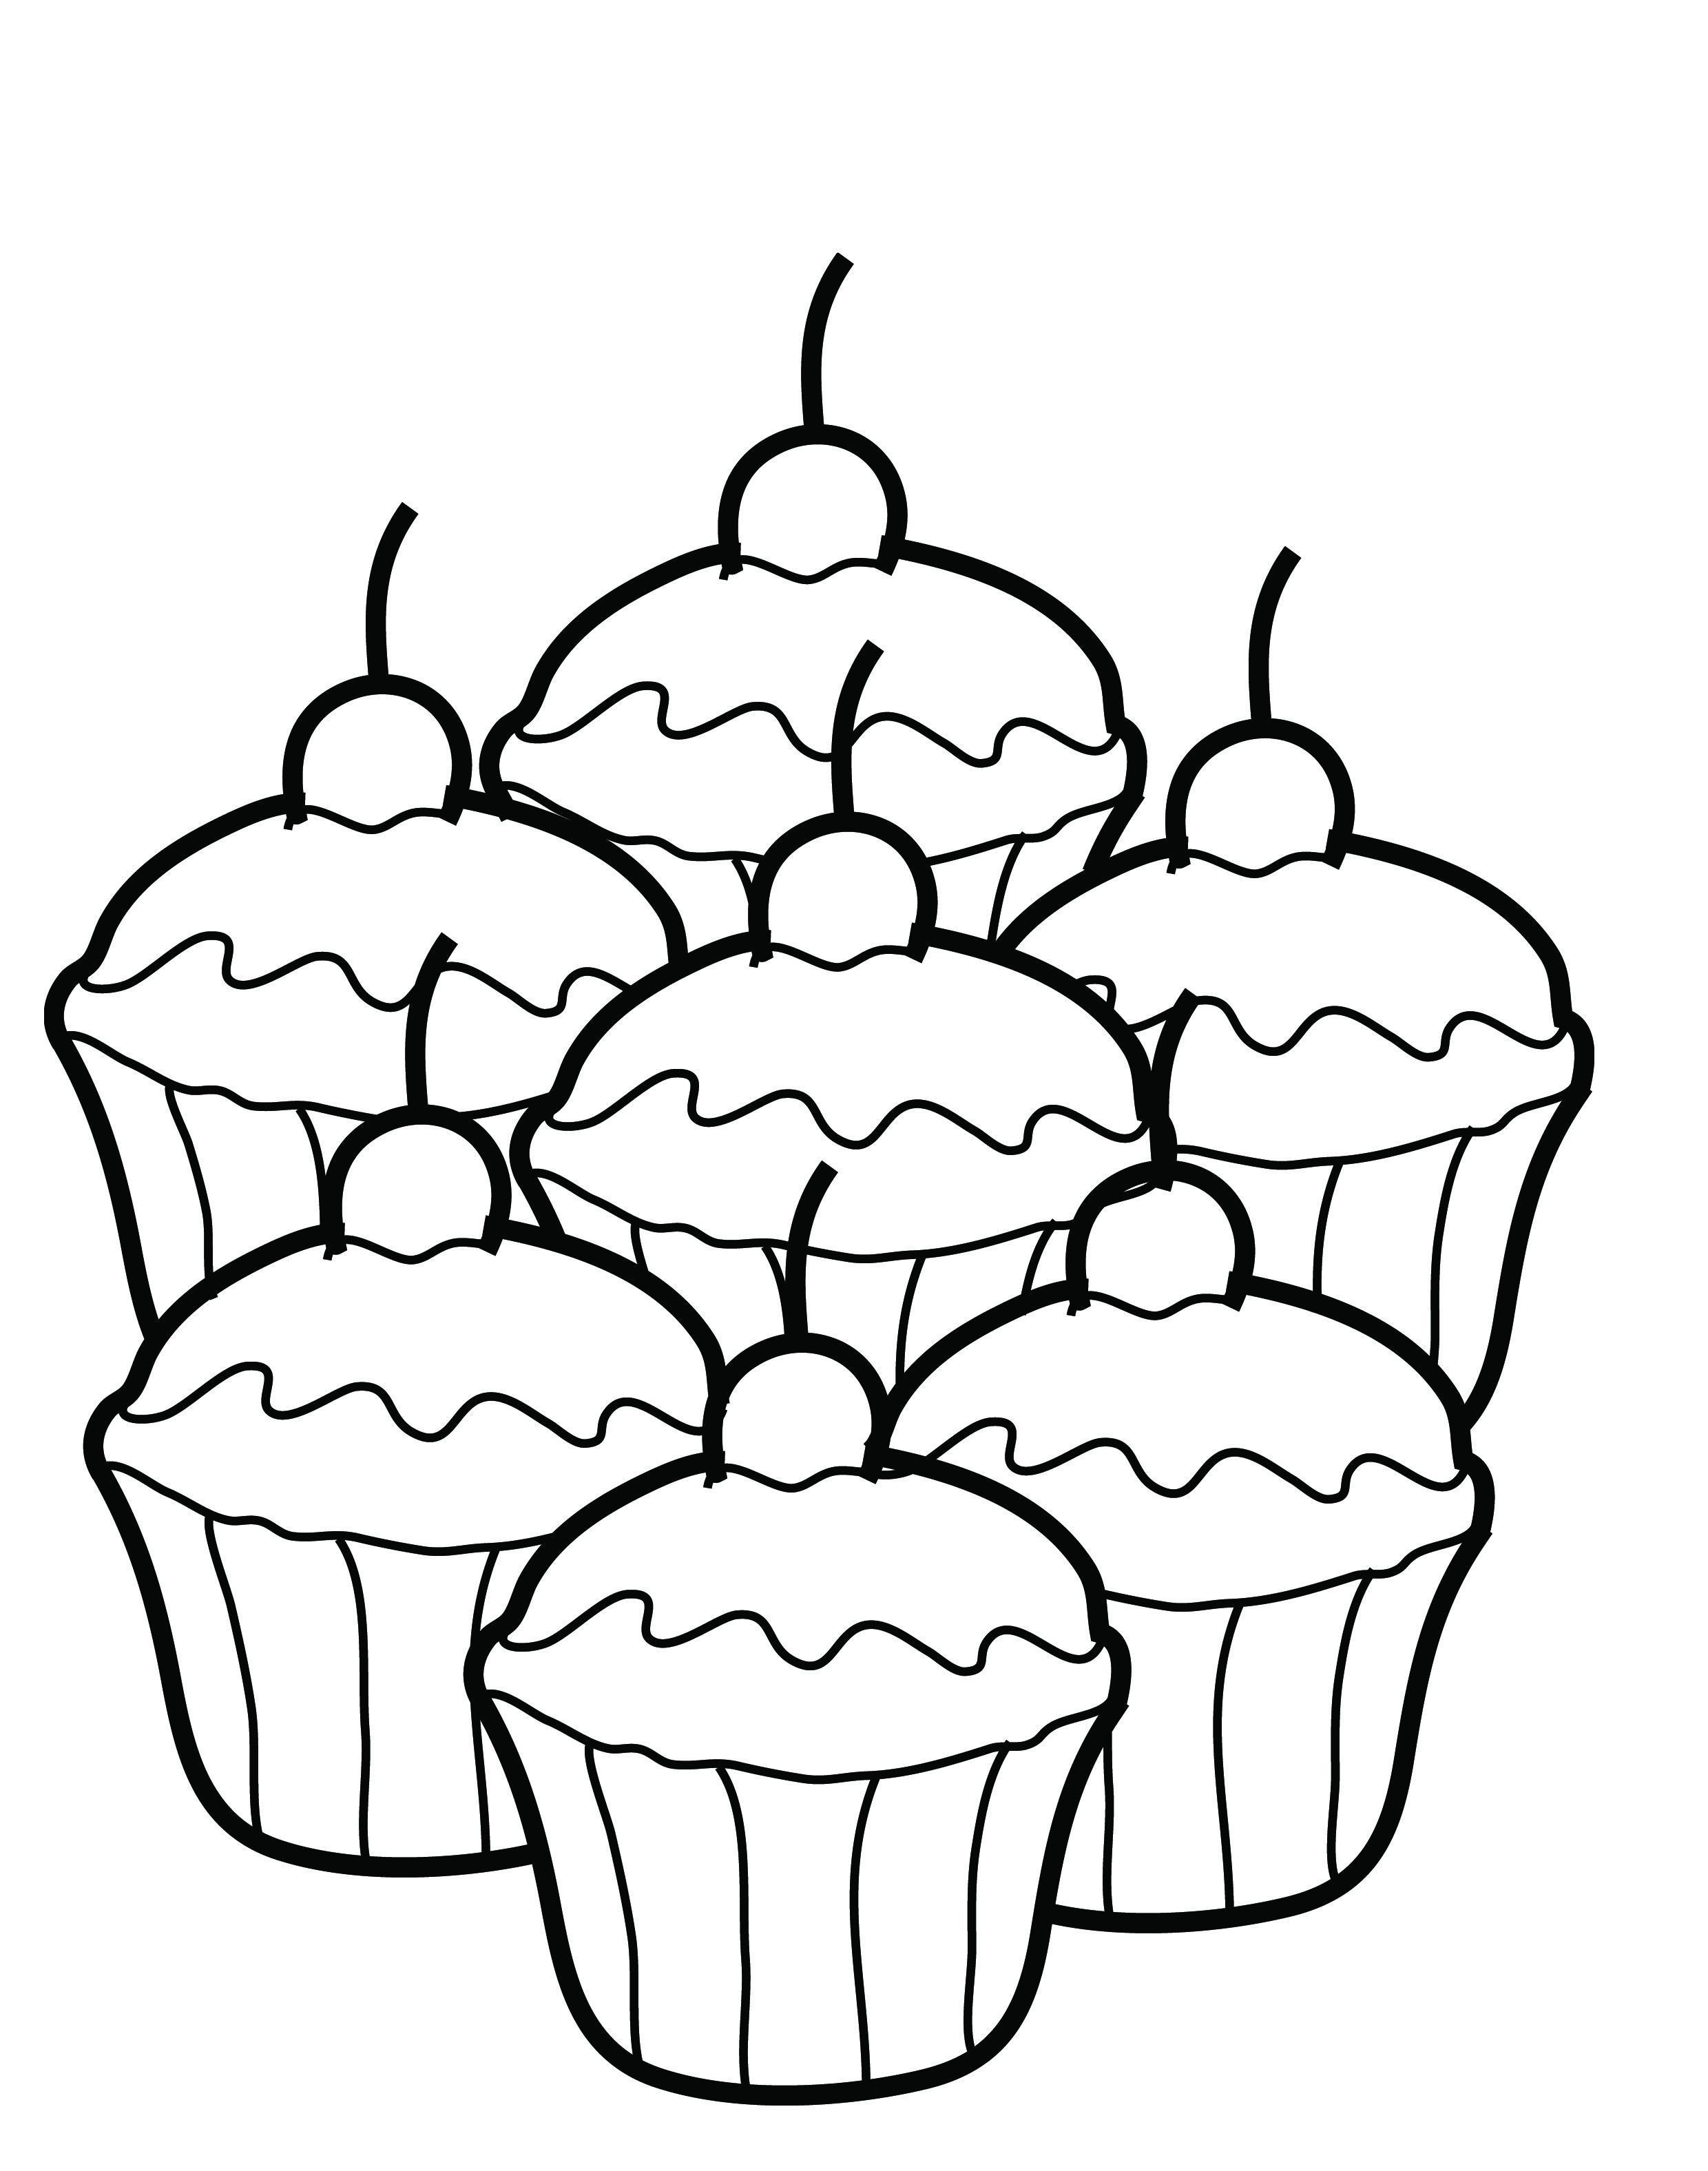 Online coloring pages for children to print - Cupcake Coloring Pages For Kids